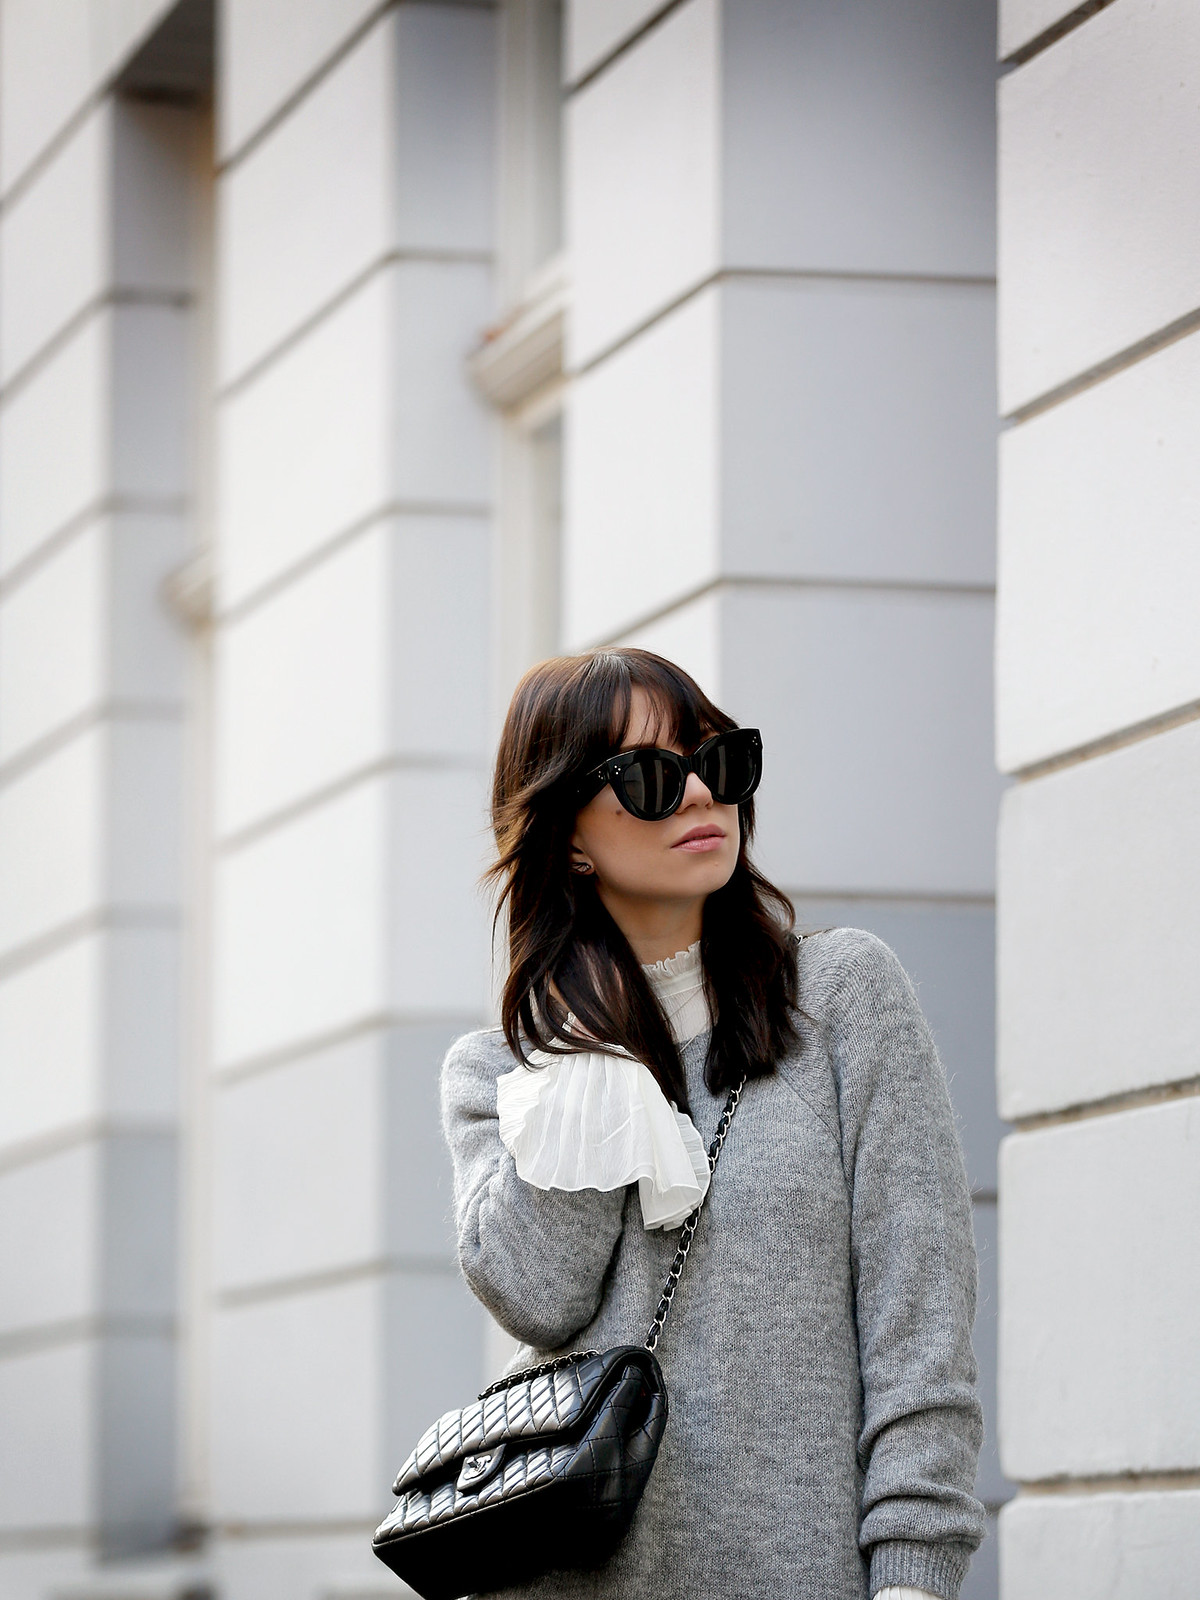 outfit h&m grey maxi knit dress bell sleeves hippie chanel 2.55 classic luxury bag black silver hardware sacha boots winter isabel marant étoile ootd fashionblogger ricarda schernus cats & dogs 3